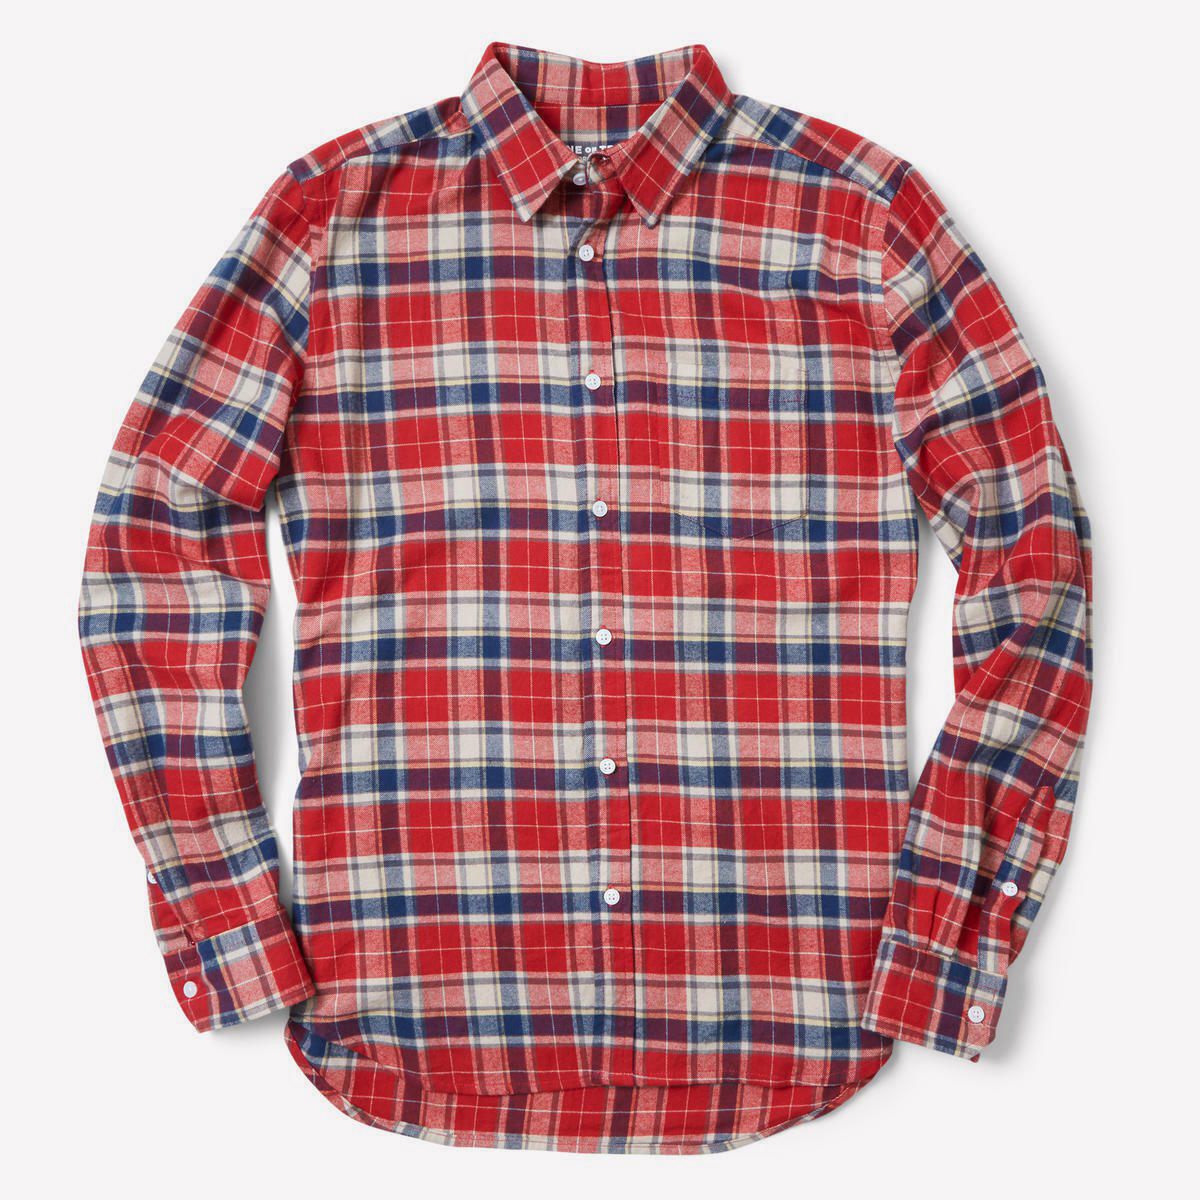 c008539e614 NEW - LINE OF TRADE Men s 1810 LAYERS L S Red Maple CASUAL FLANNEL SHIRT -  XXL nwzwja6463-Casual Shirts   Tops